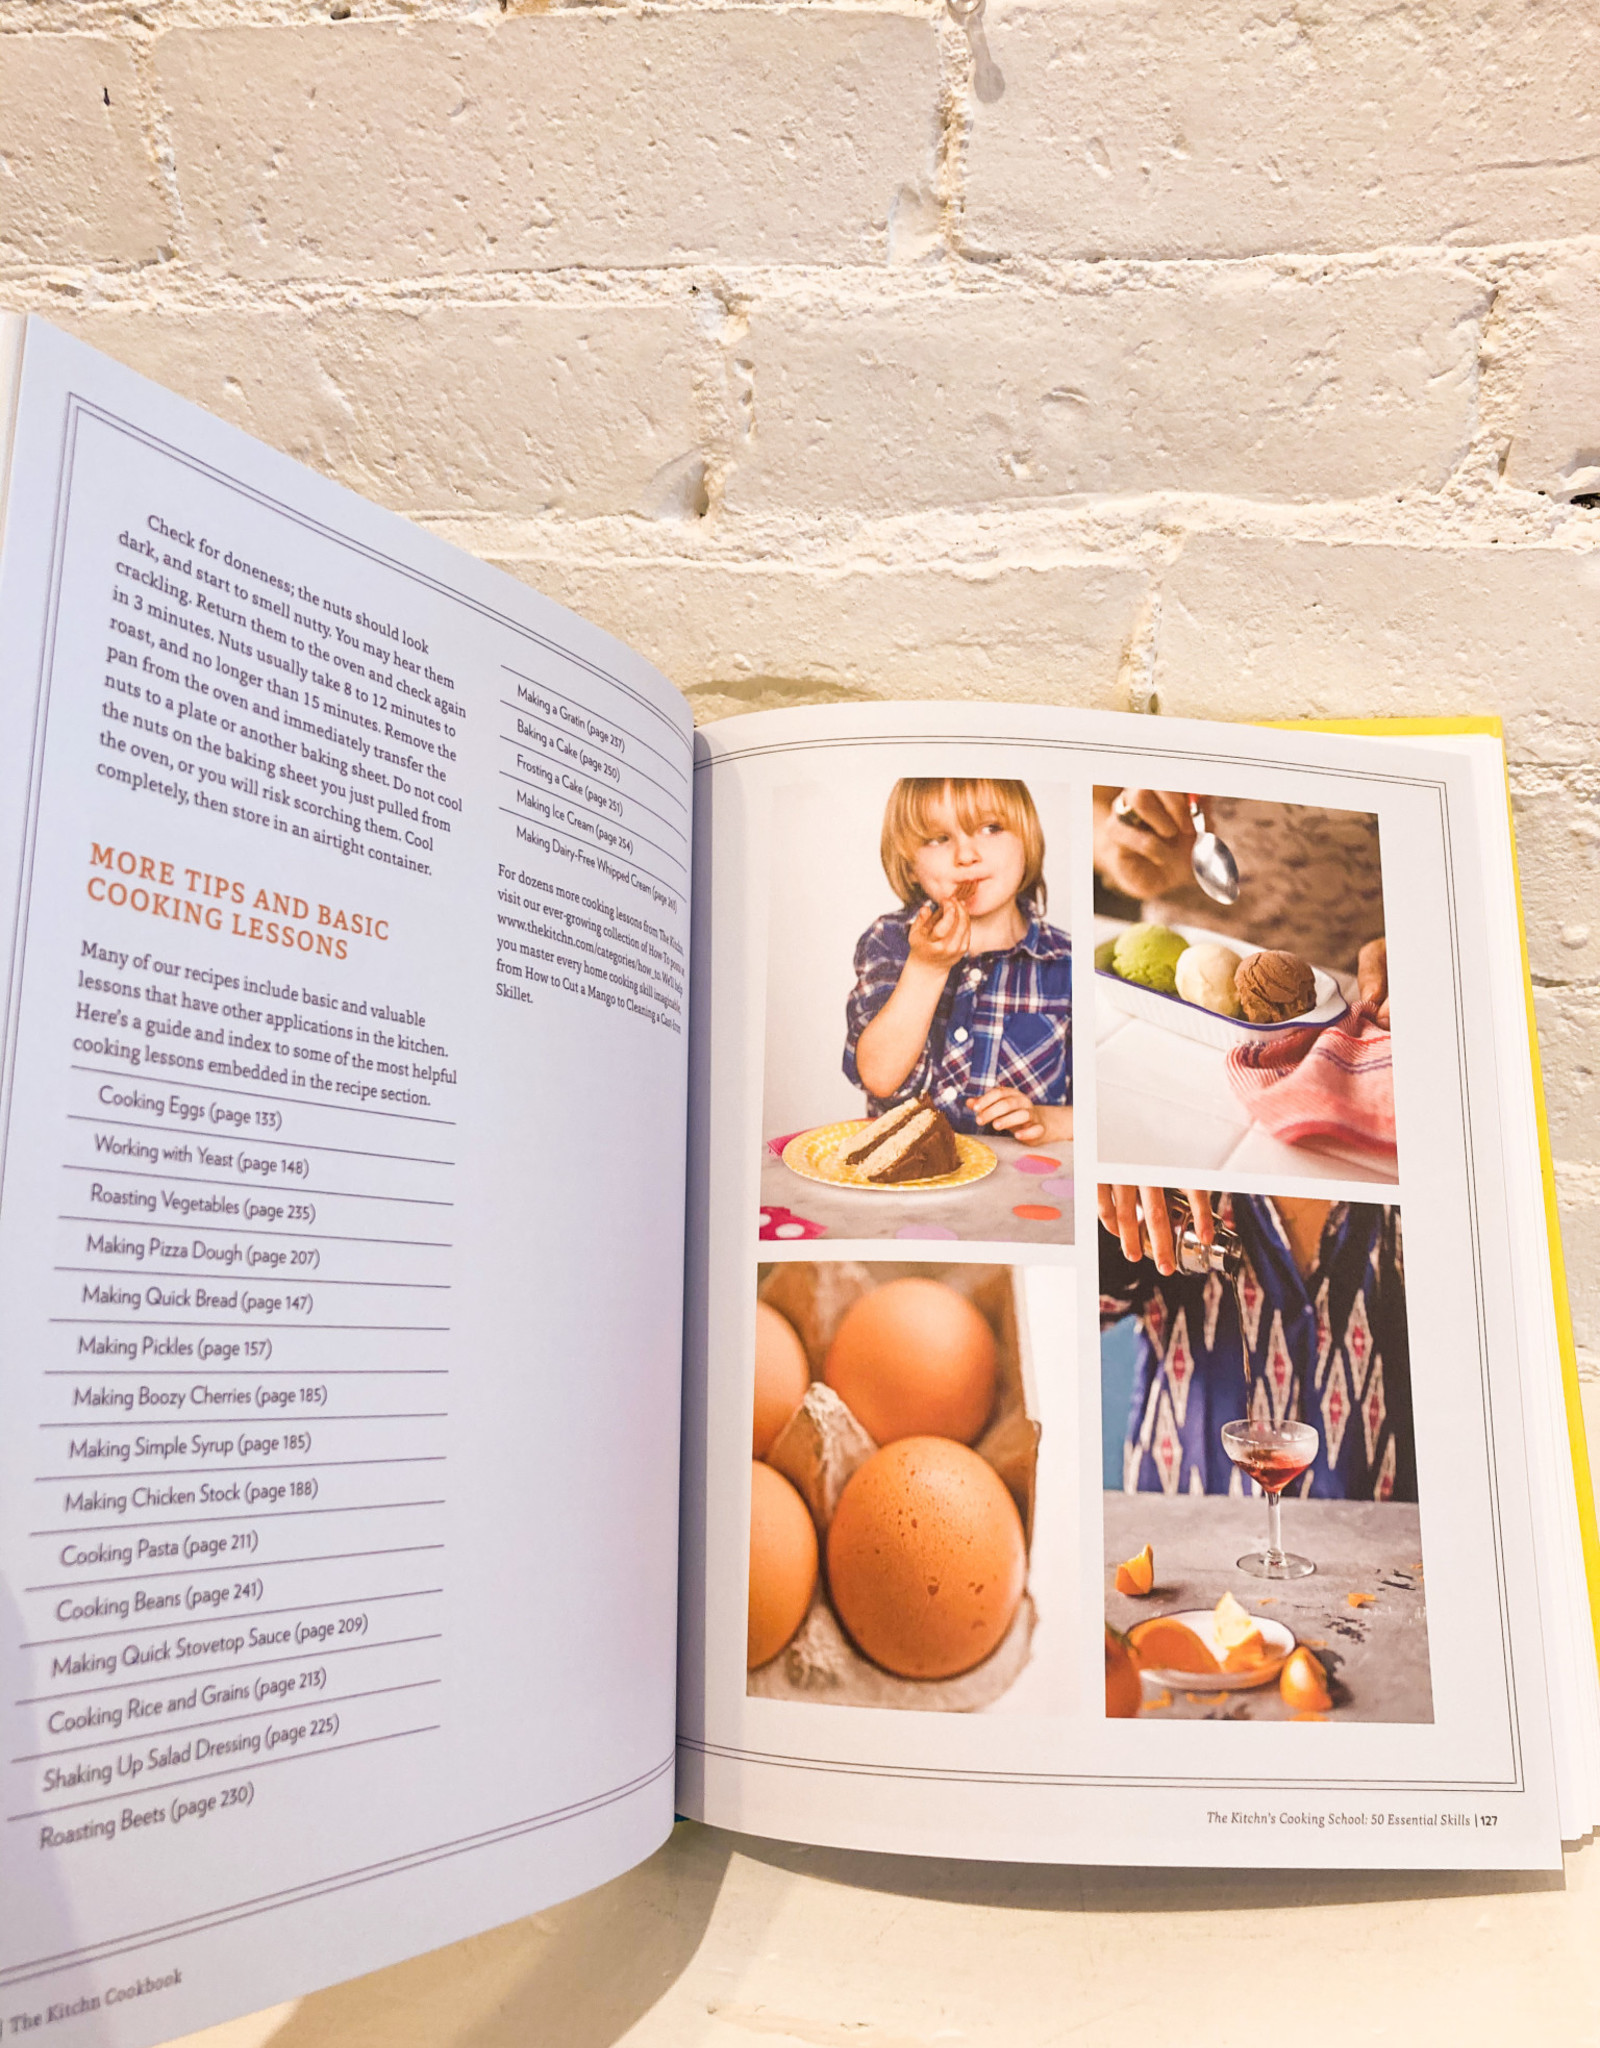 The Kitchn Cookbook by Sara Kate Gillingham & Faith Durand